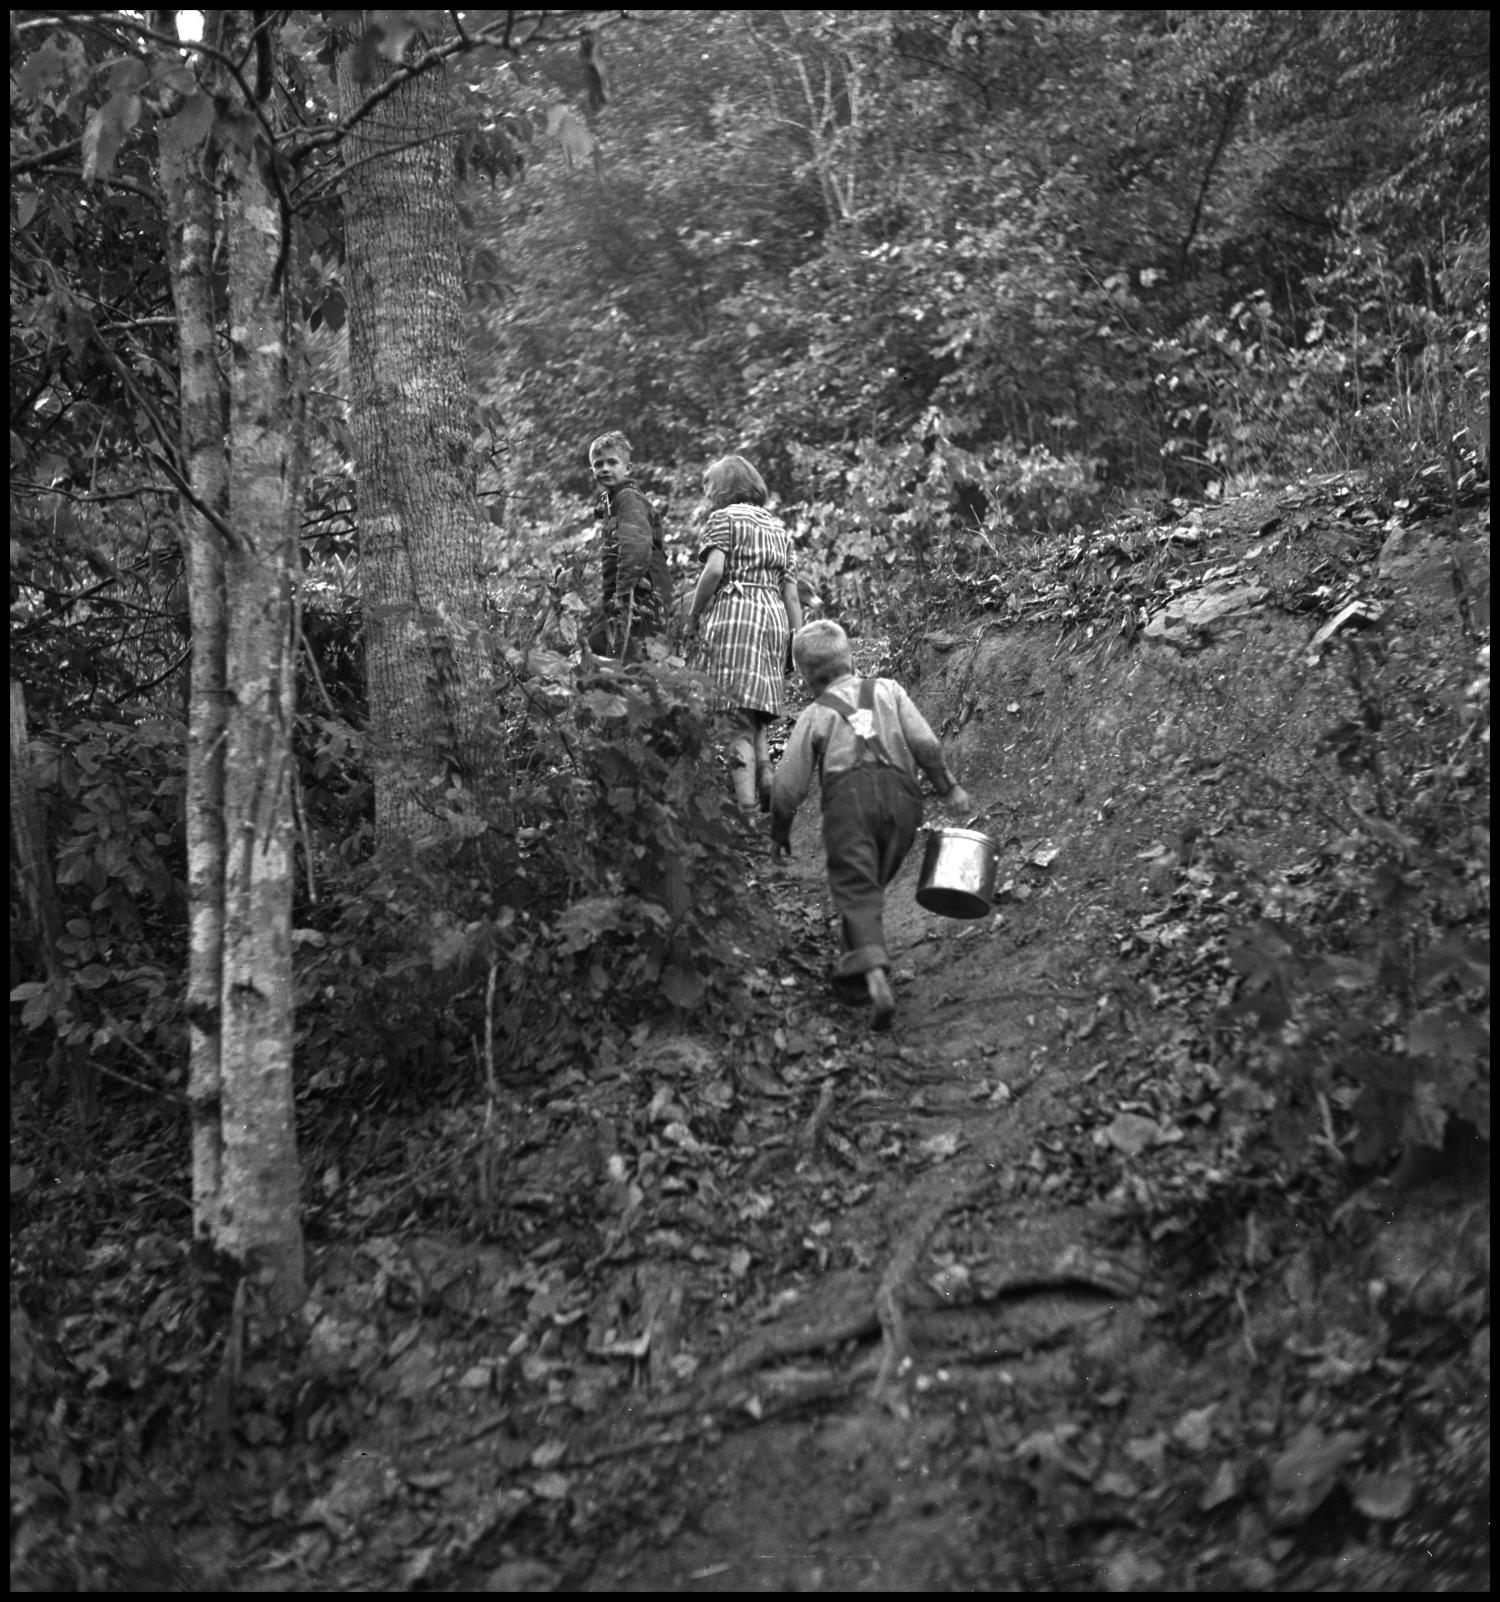 [Children walking along path(1)], Photograph of three children of varying ages walking along a dirt path through a wooded area. The child in the front of the line is barefoot and carrying a lunch pail.,